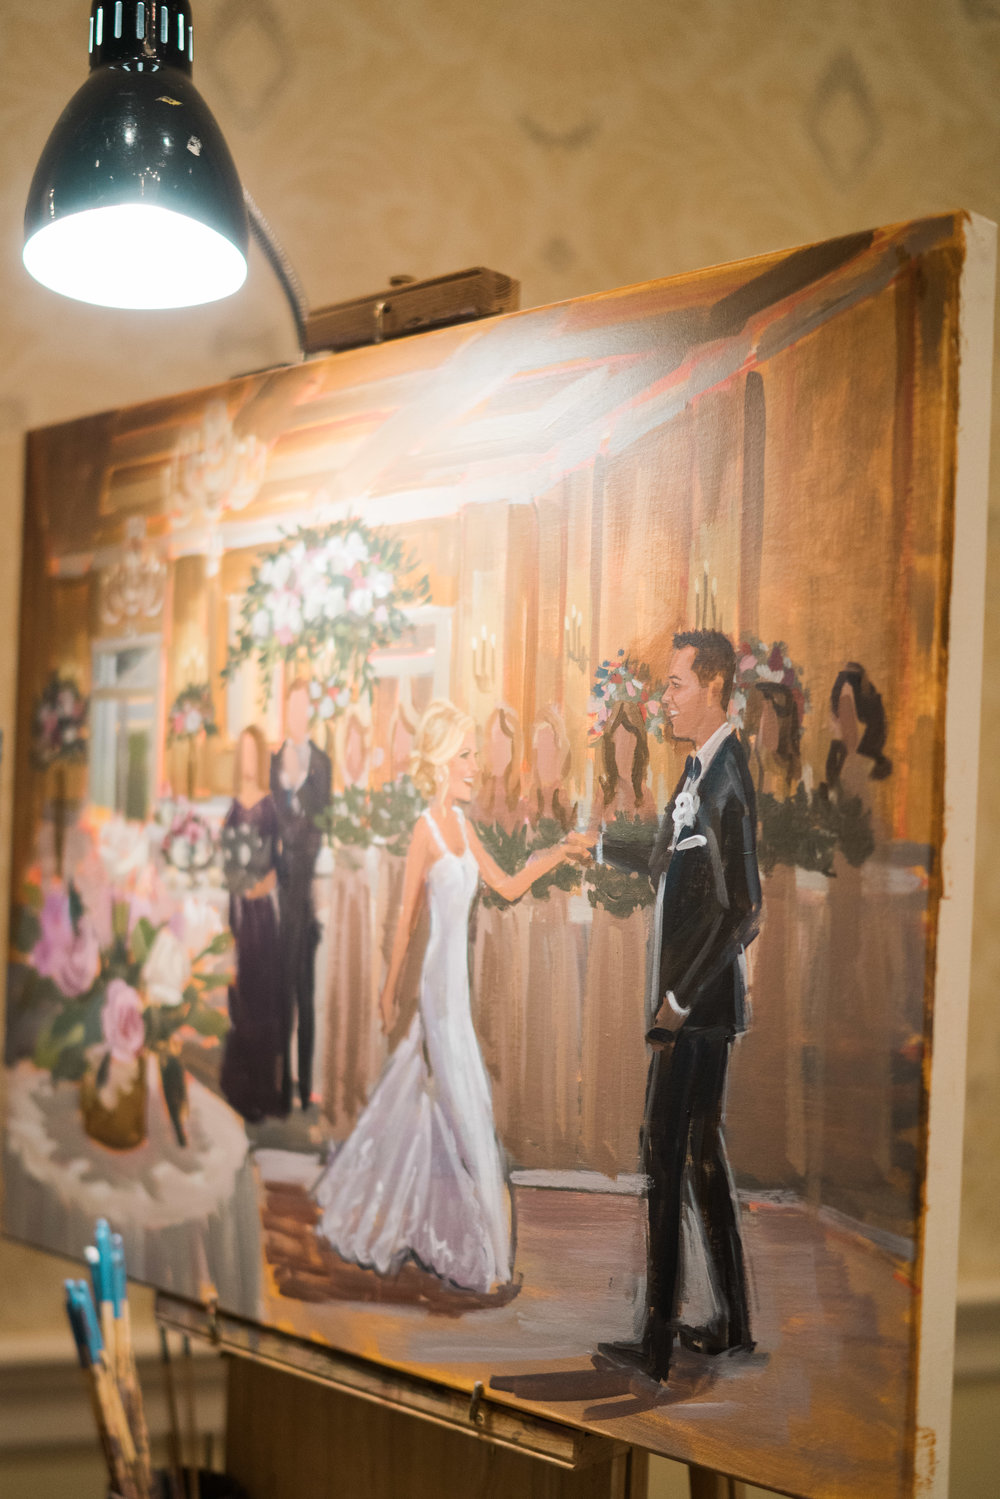 live-wedding-painter-ben-keys-wed-on-canvas-wilmington